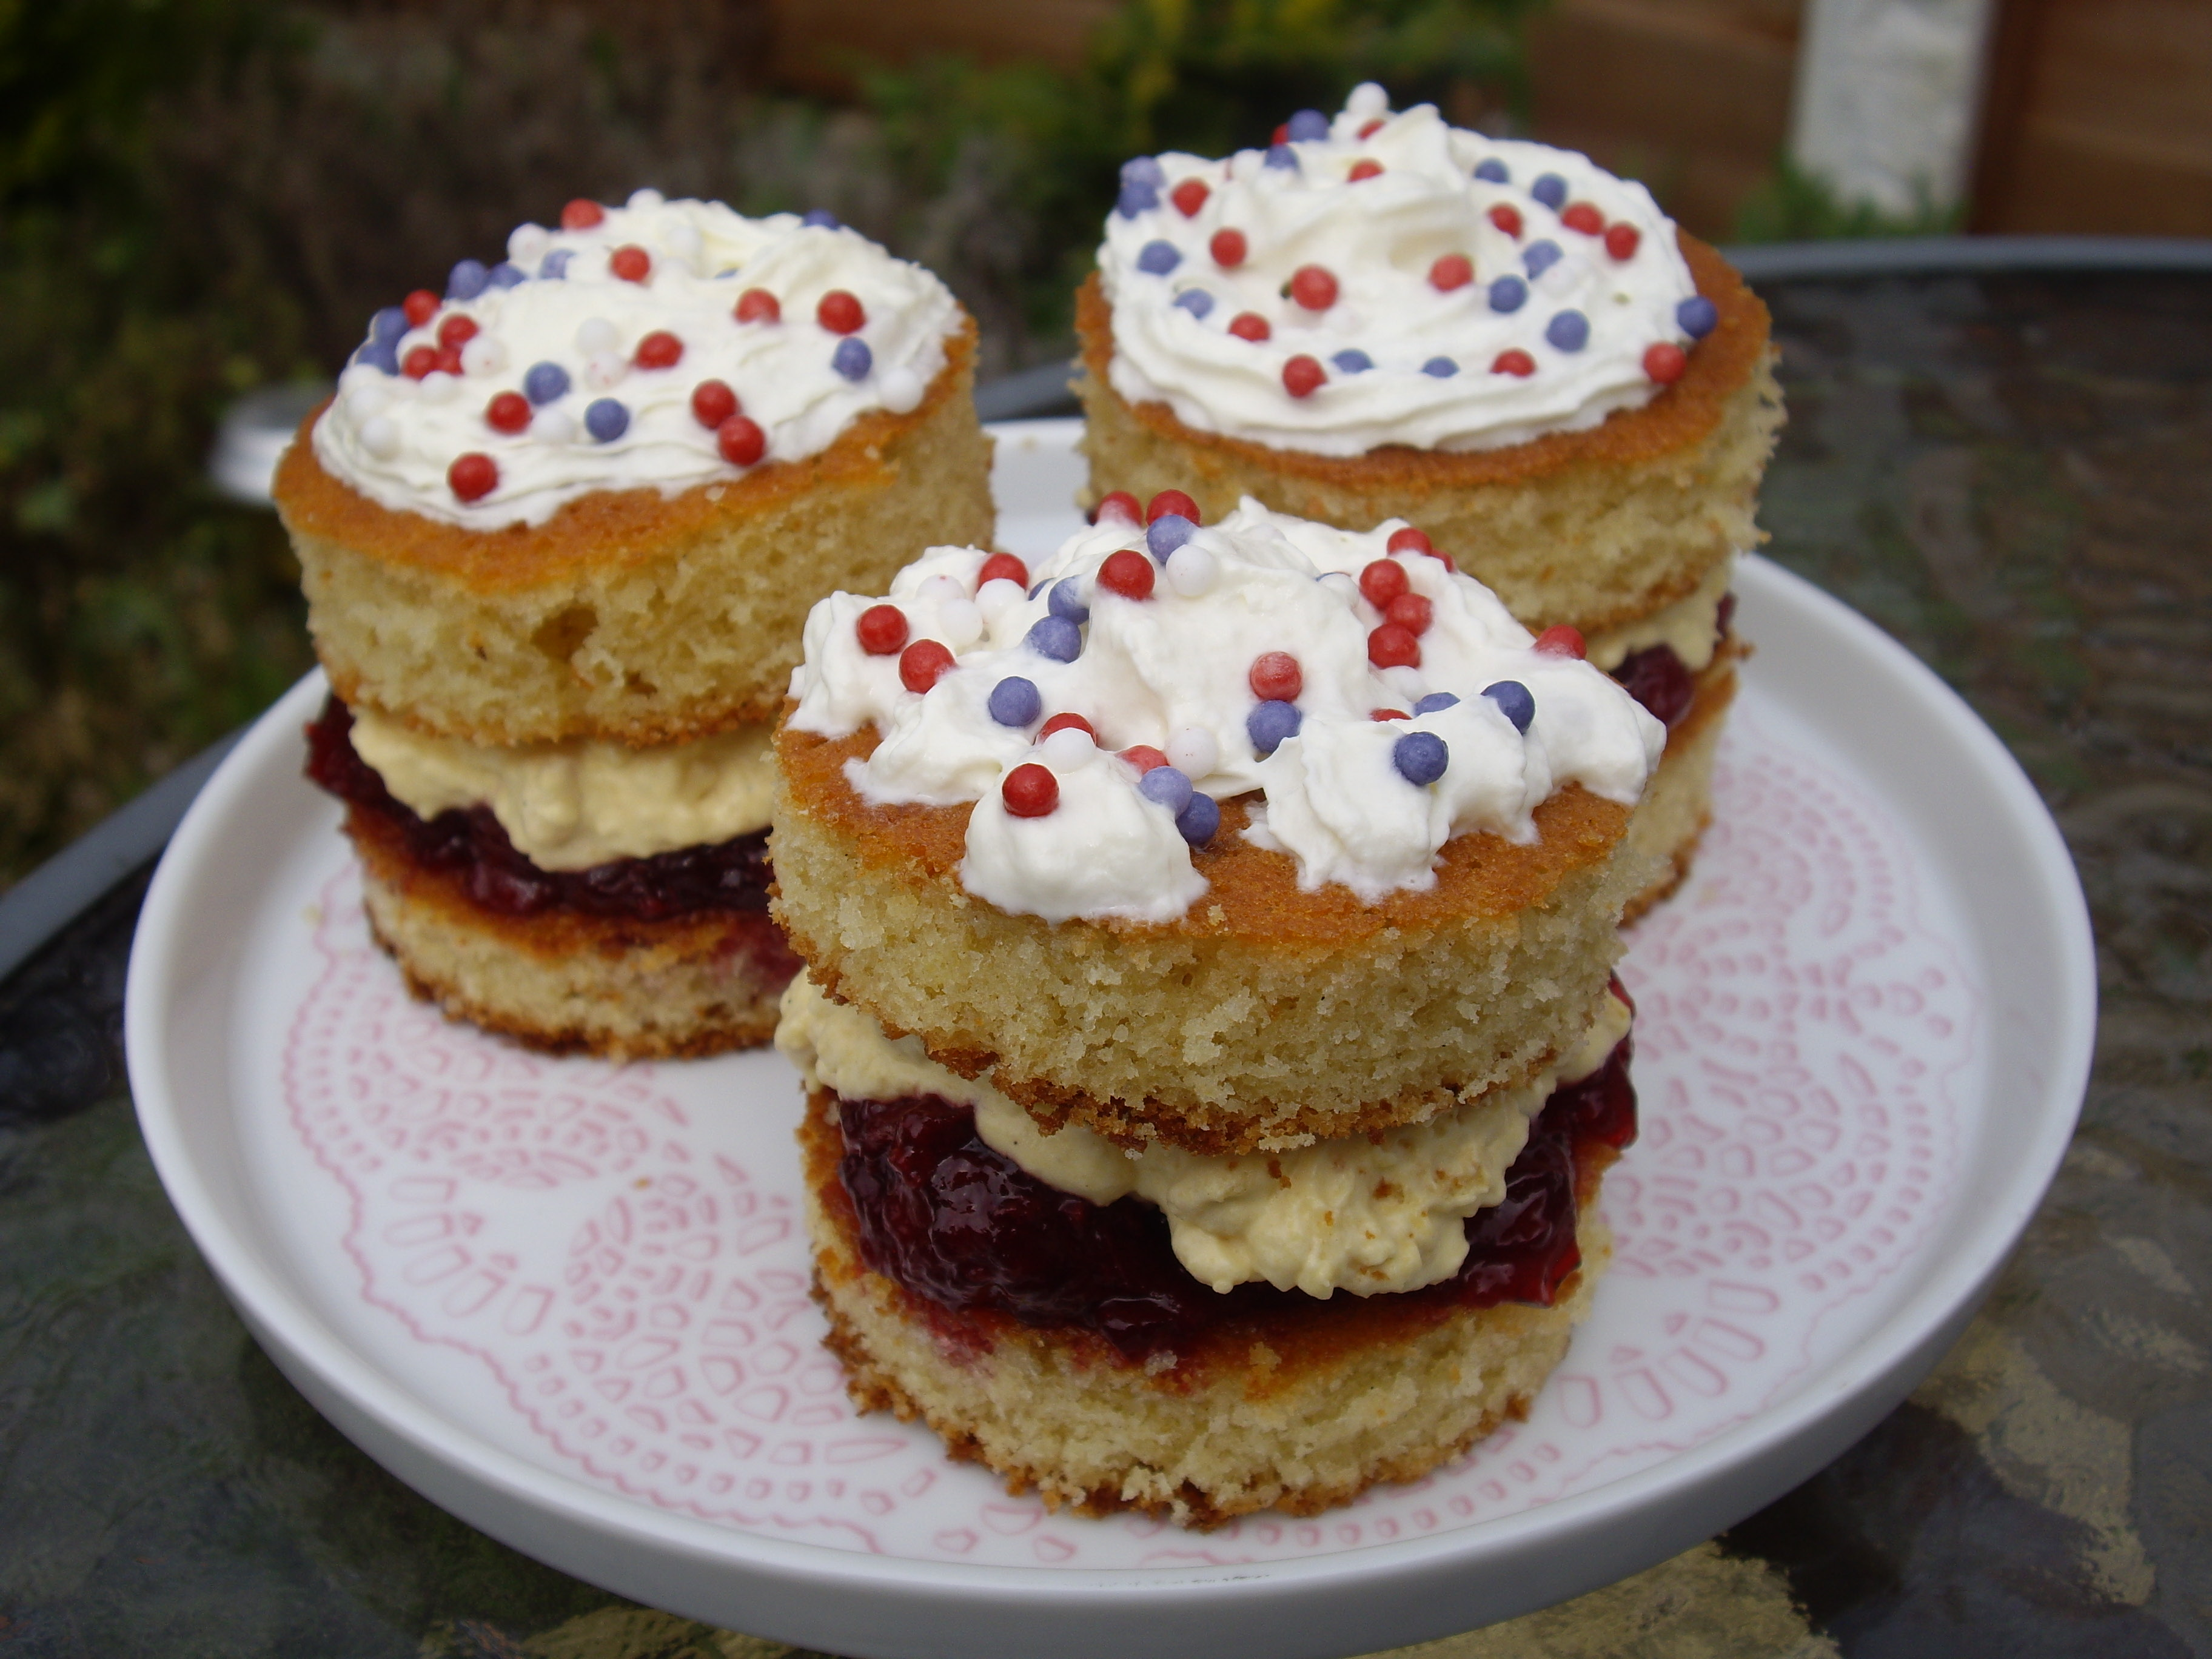 Squirty Cream In Cakes